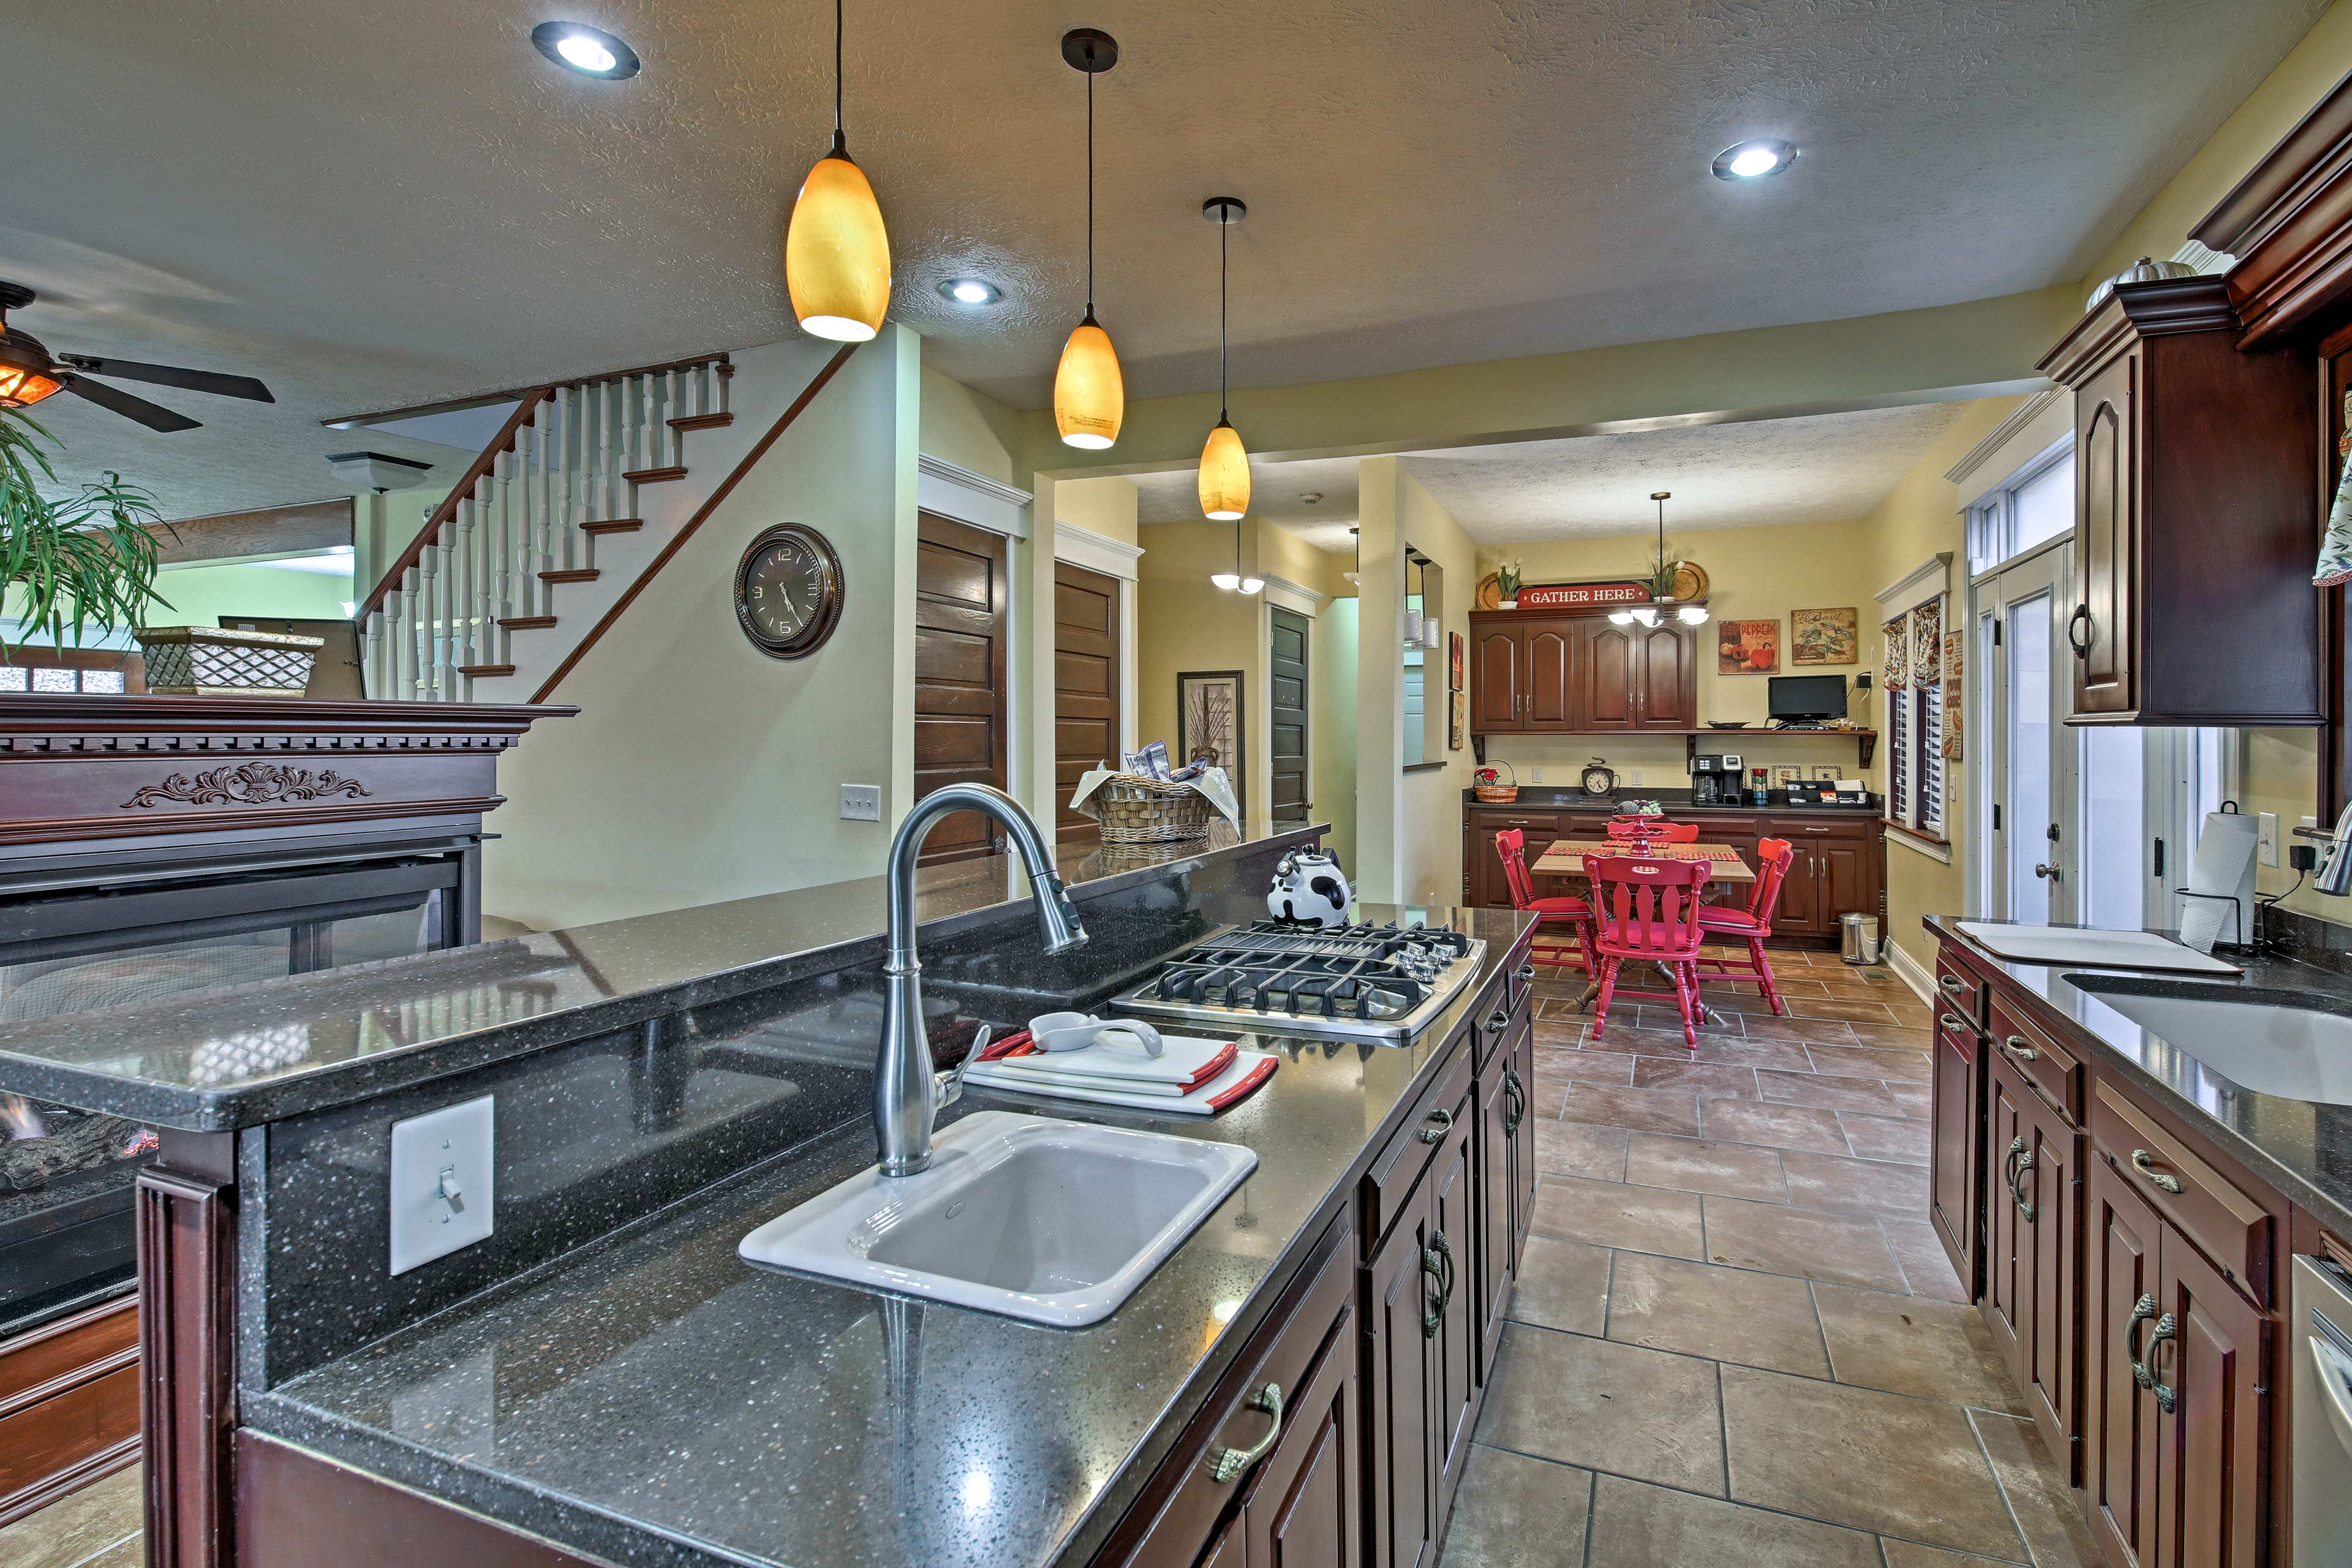 The kitchen features new, stainless steel appliances.